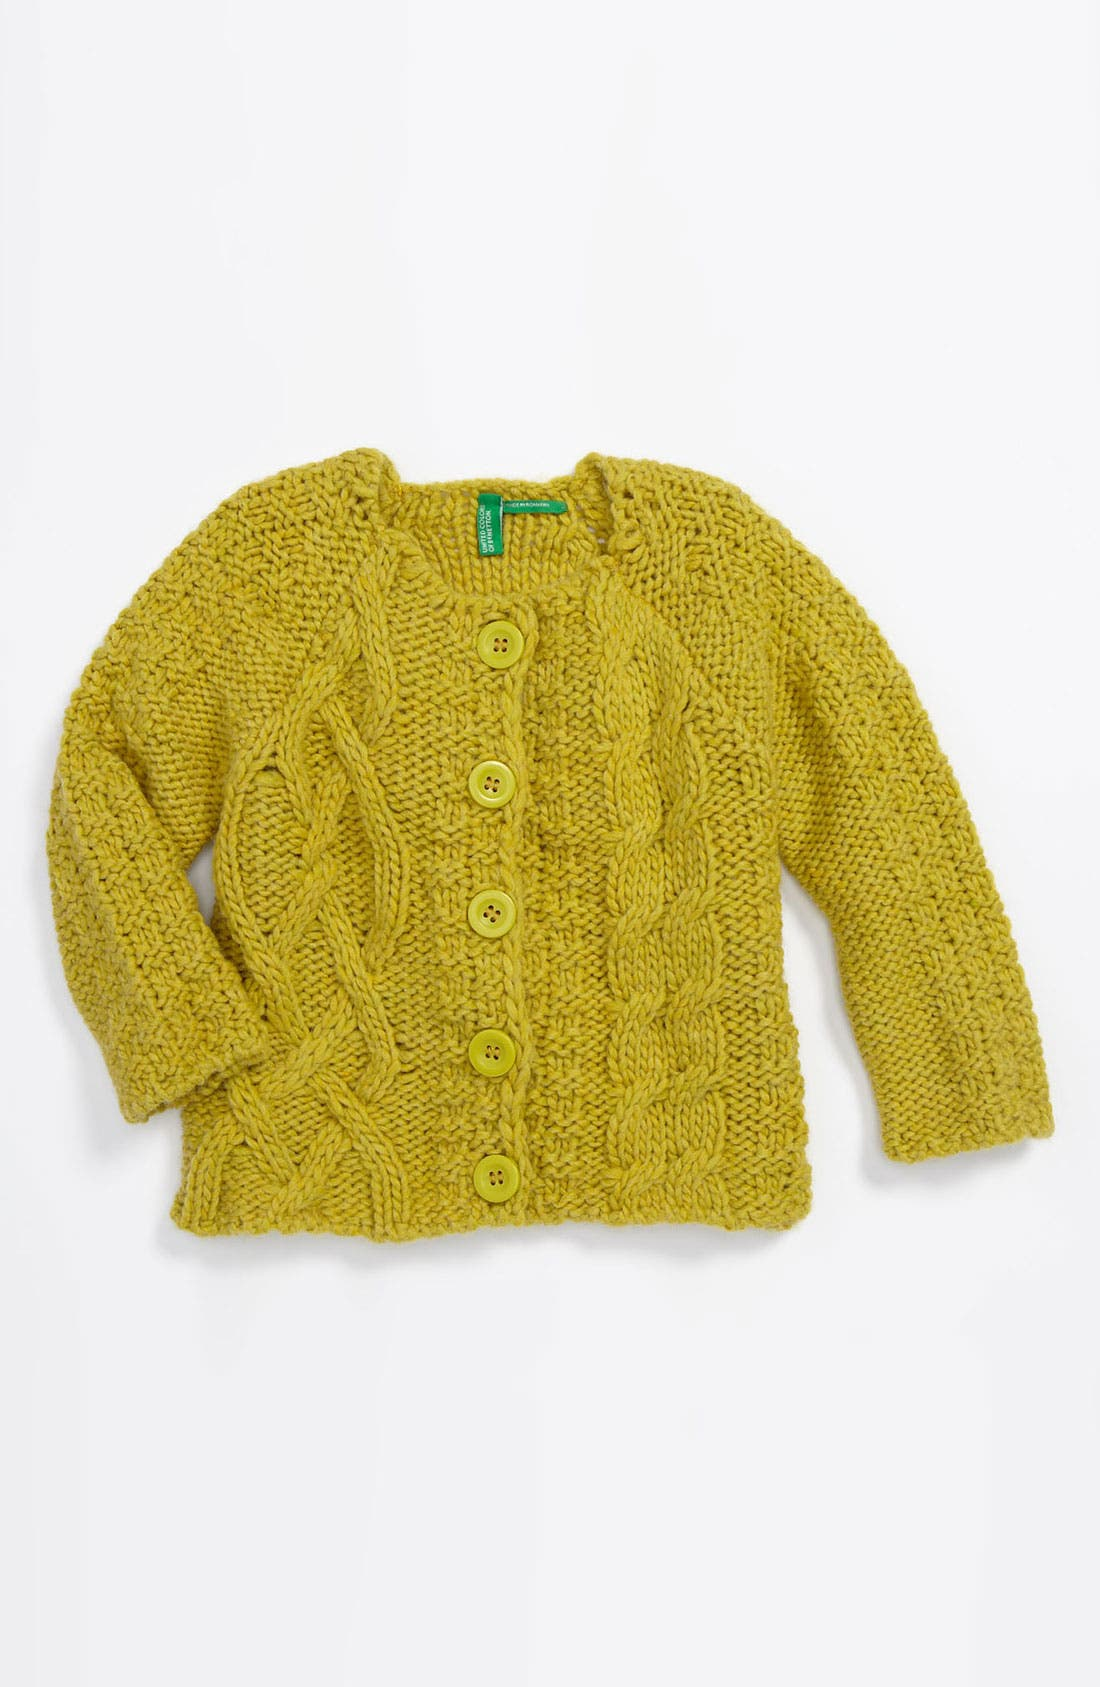 Alternate Image 1 Selected - United Colors of Benetton Kids Cable Knit Sweater (Infant)